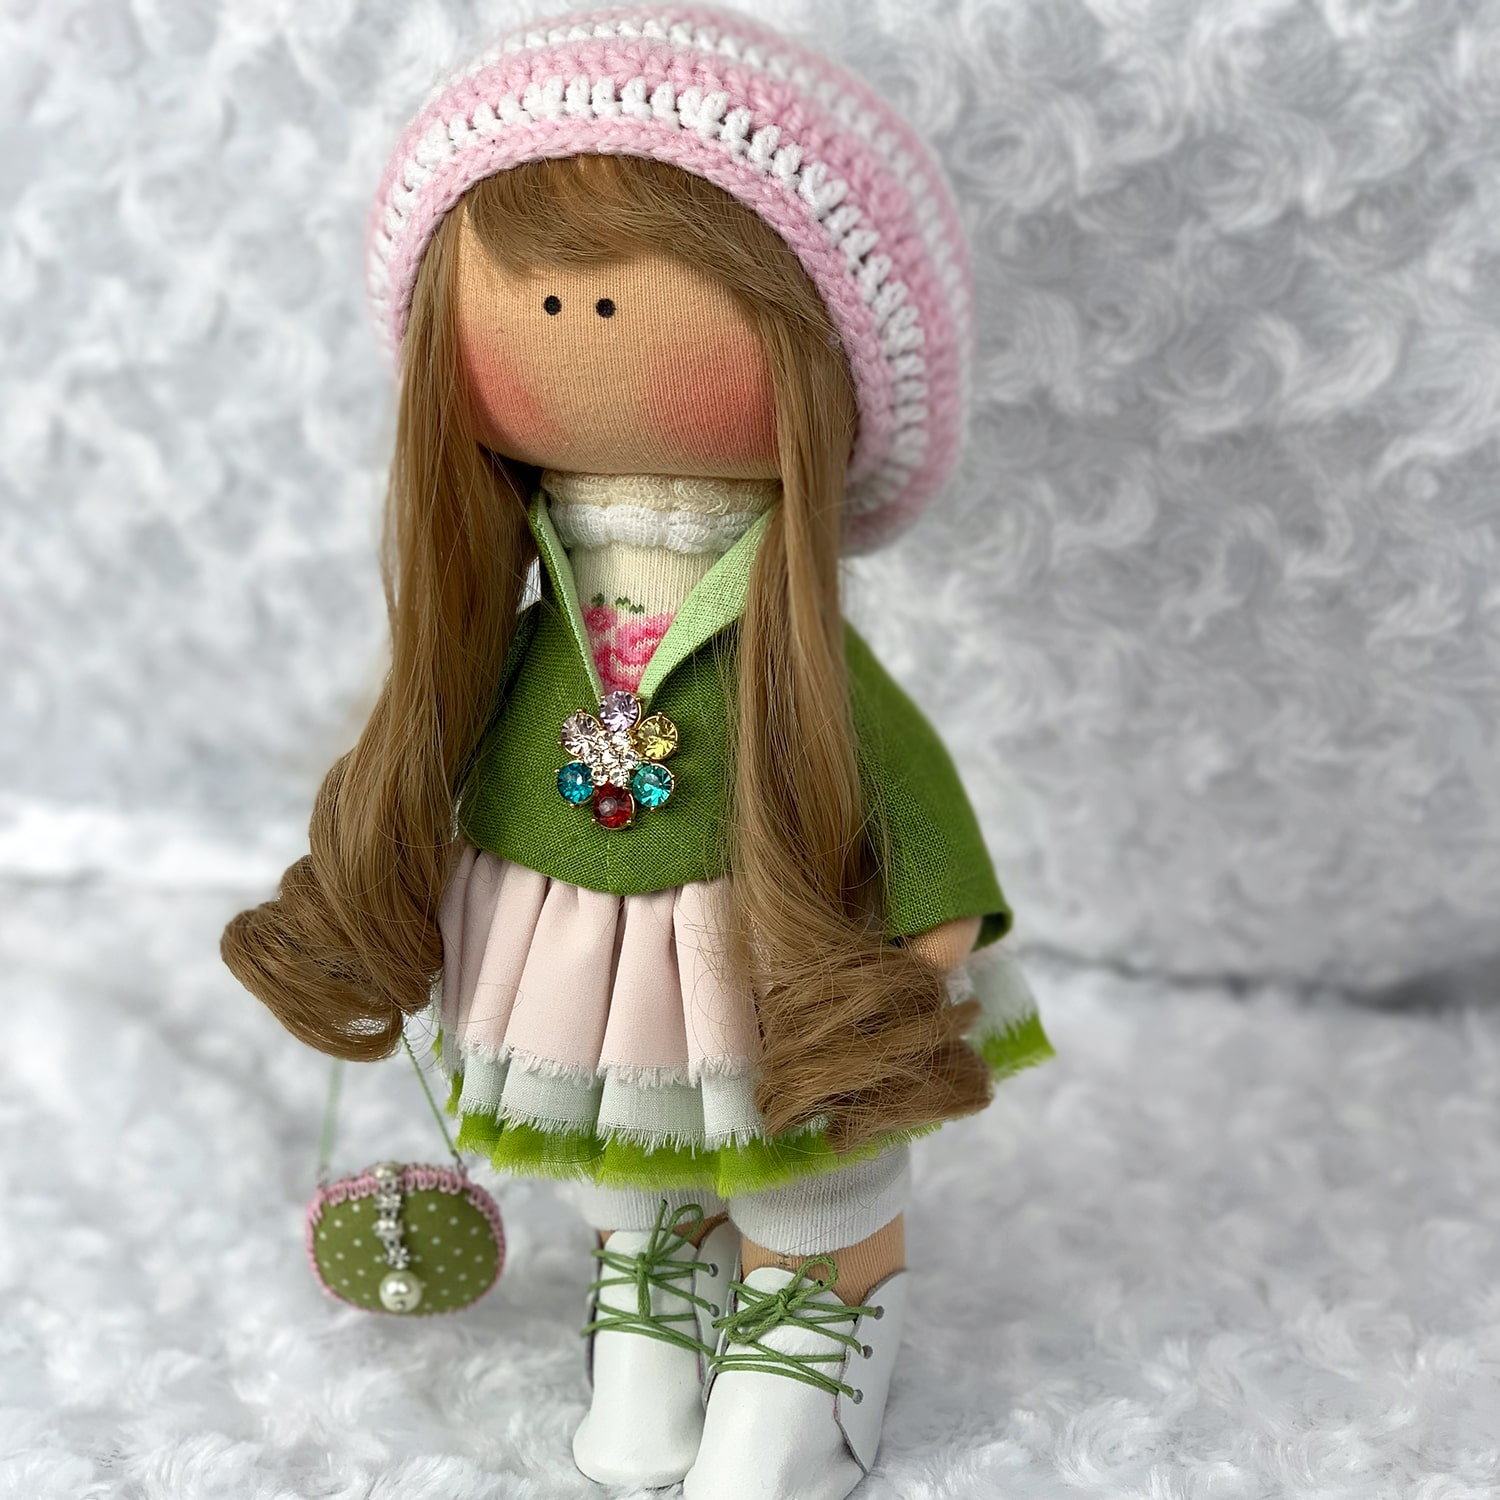 Fabric Russian Doll Mary Shortle Brunette